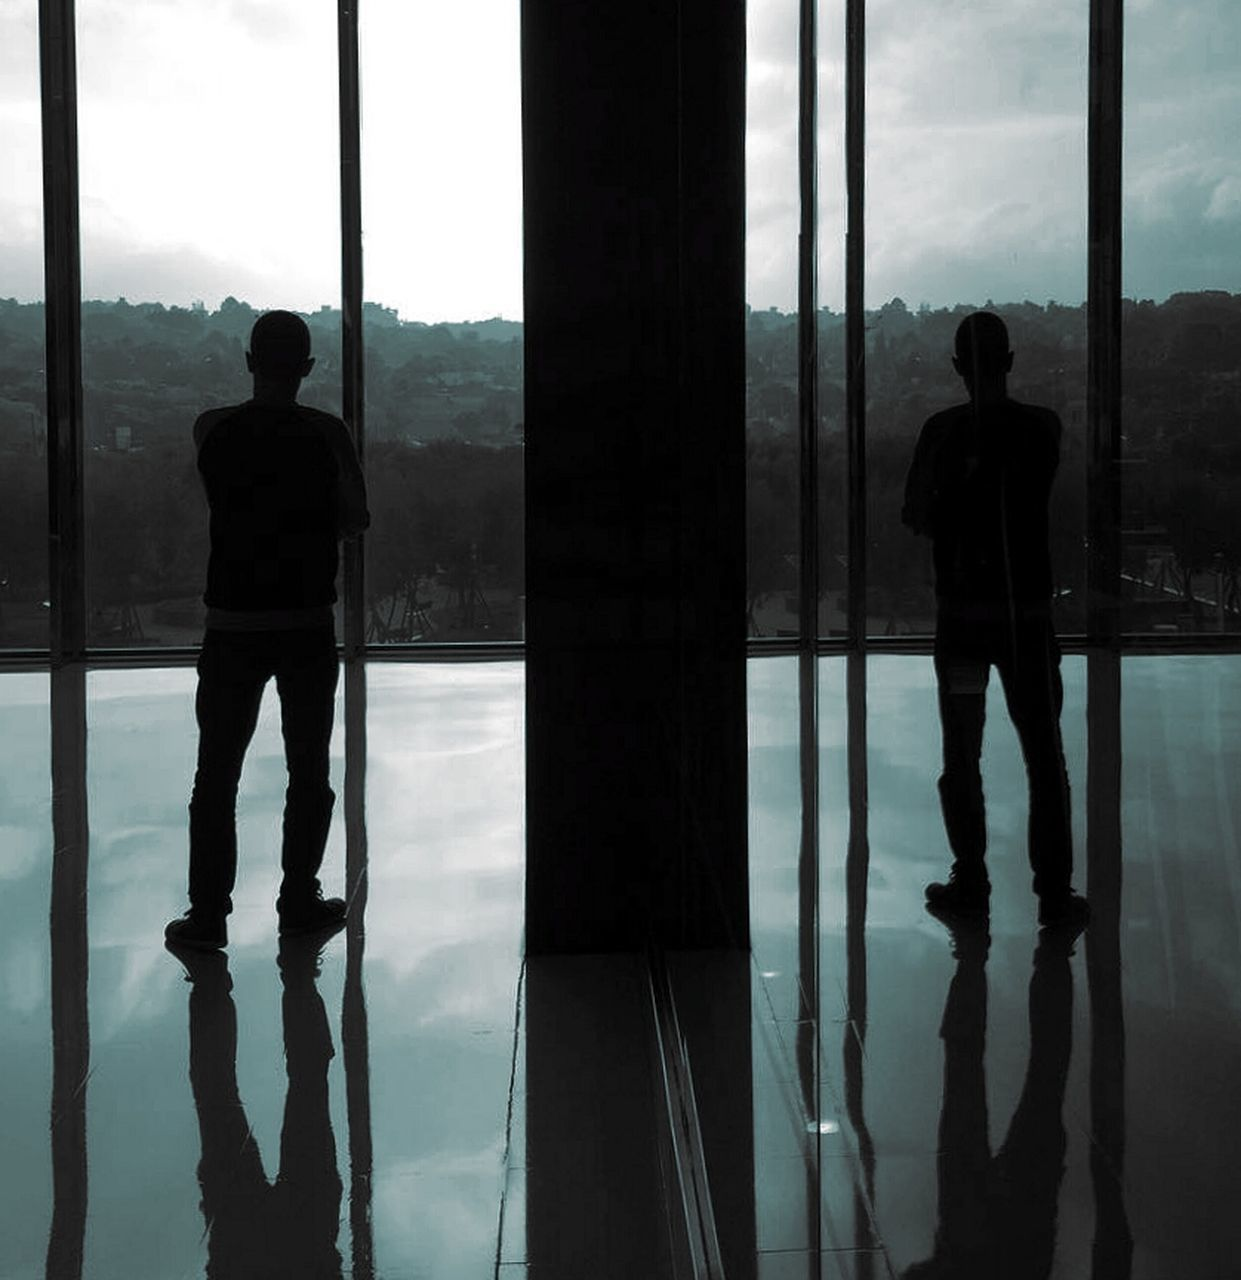 reflection, silhouette, standing, real people, full length, indoors, sky, window, men, day, cloud - sky, lifestyles, one person, water, architecture, nature, people